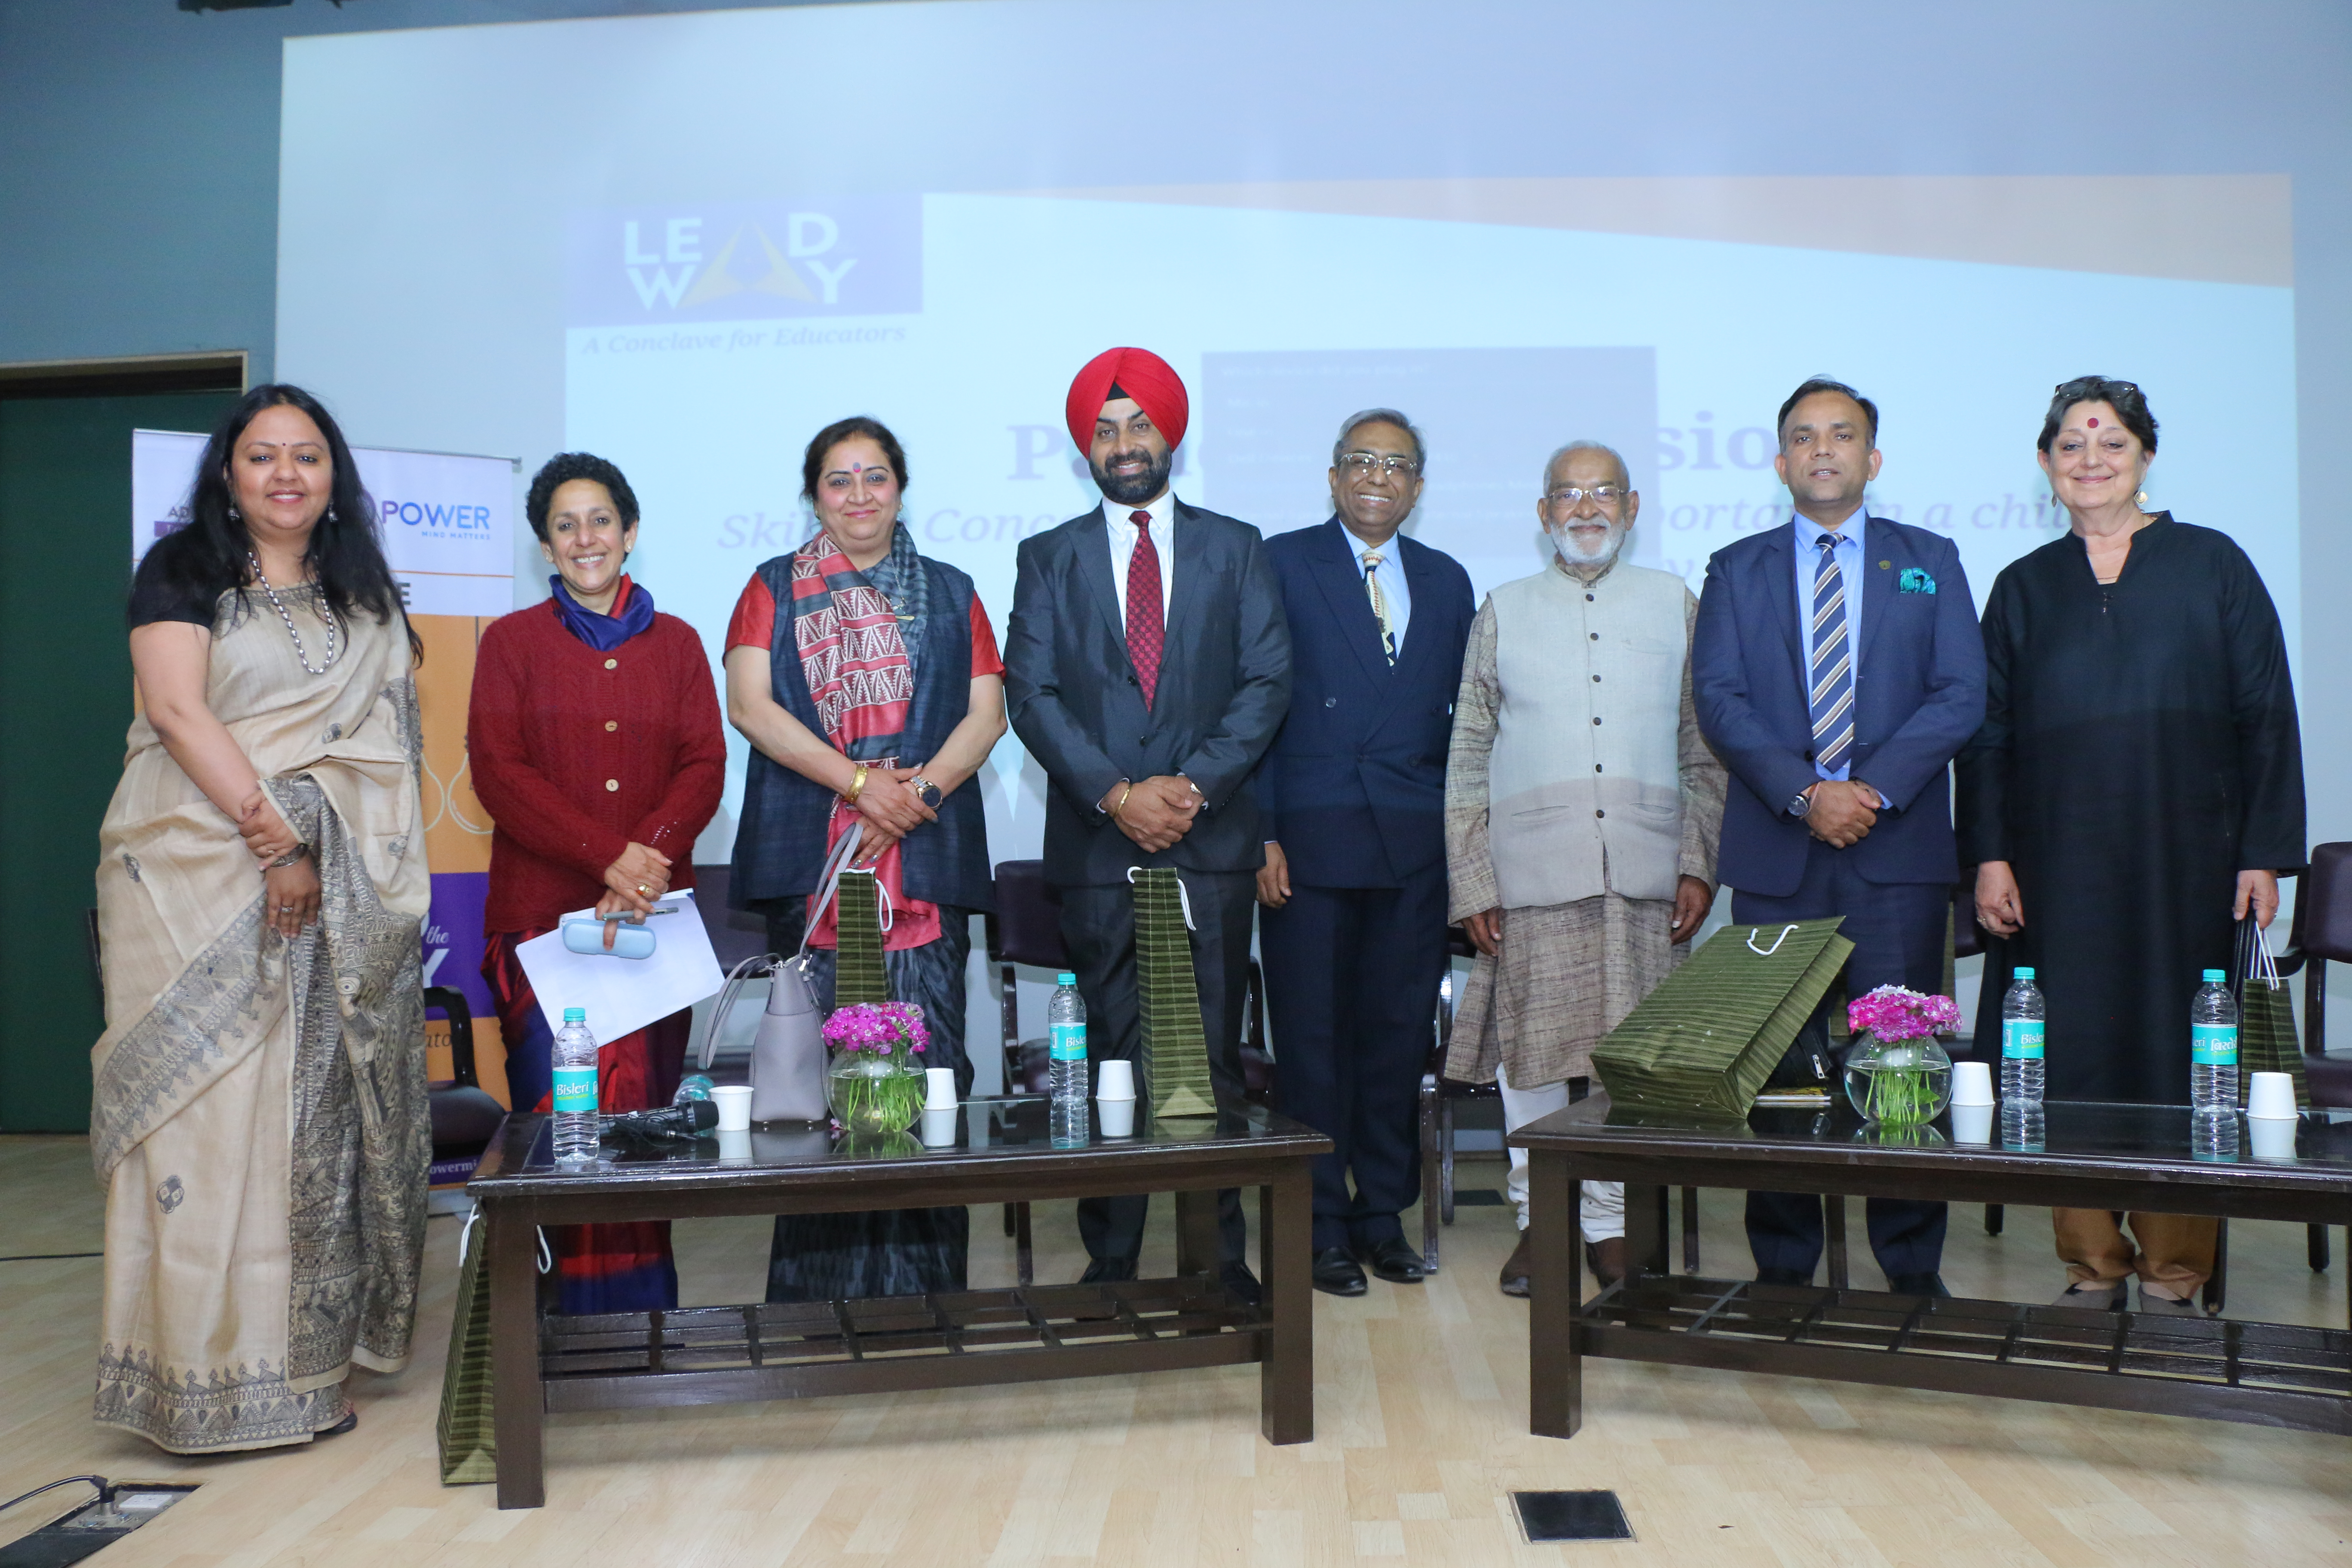 Educational Conclave held at Doon School | Garhwal Post